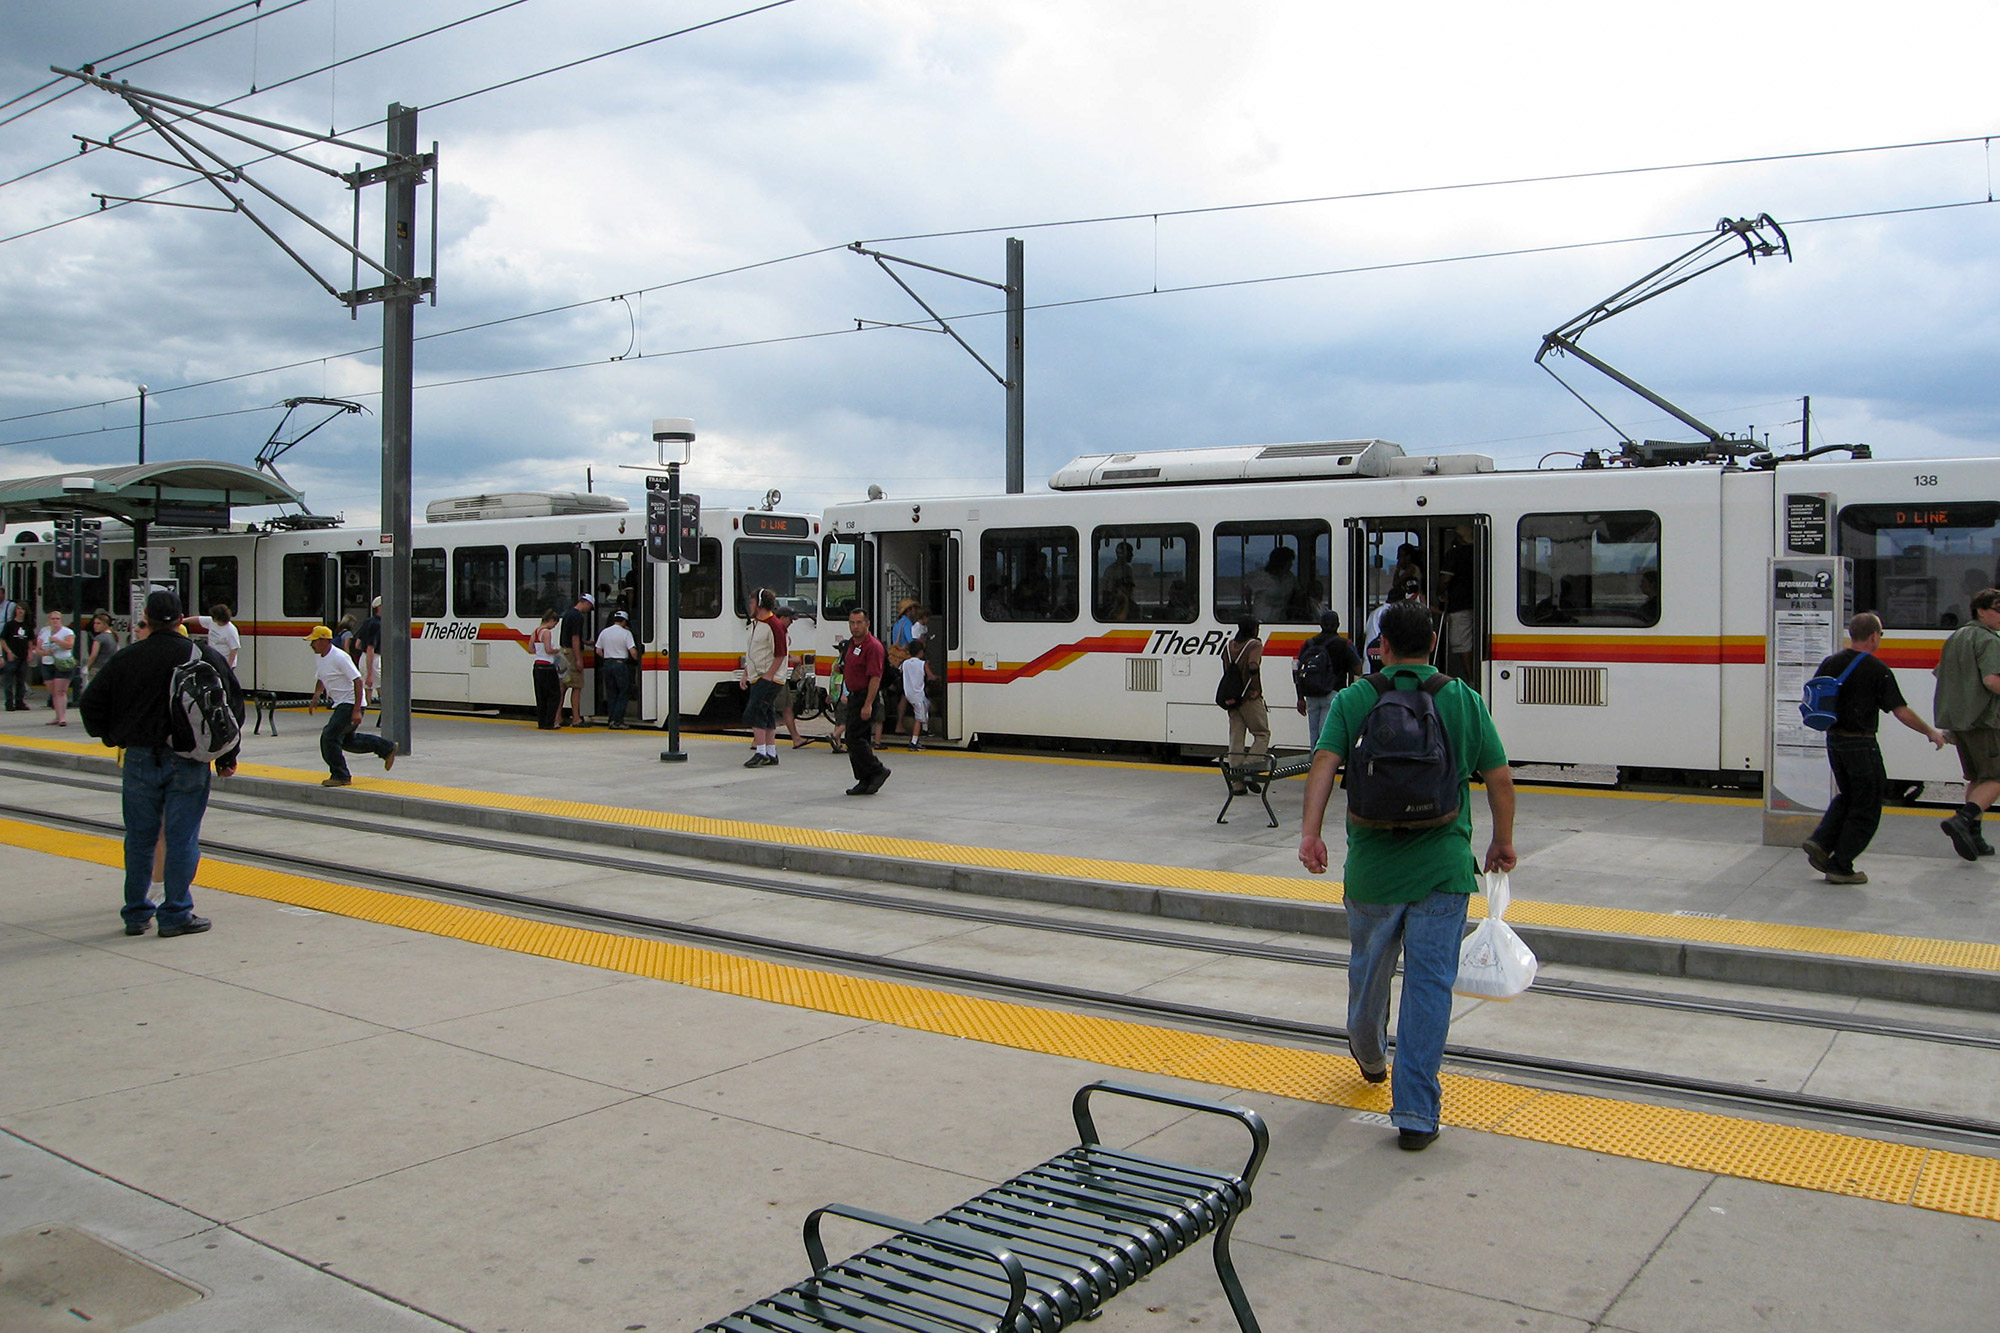 Transit users at Denver's Broadway station. Image courtesy of Wikimedia Commons (By Mobyll)